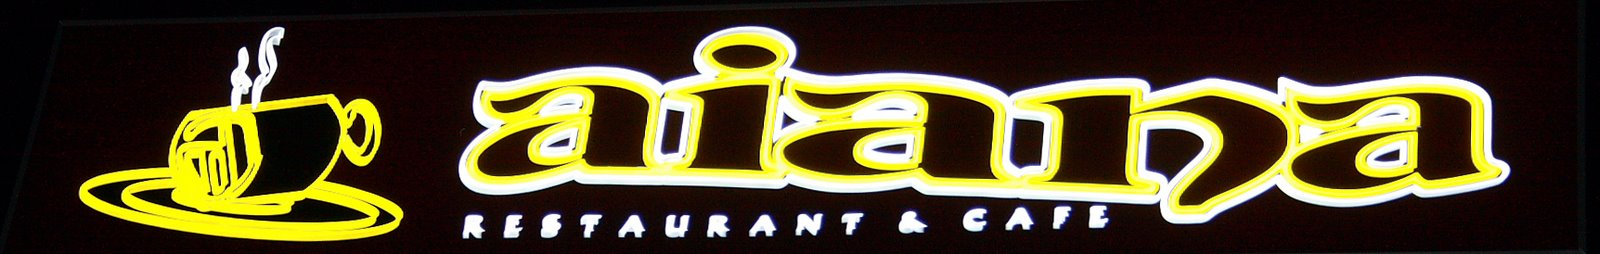 Aiana Restaurant & Cafe, for ALL to dine in...